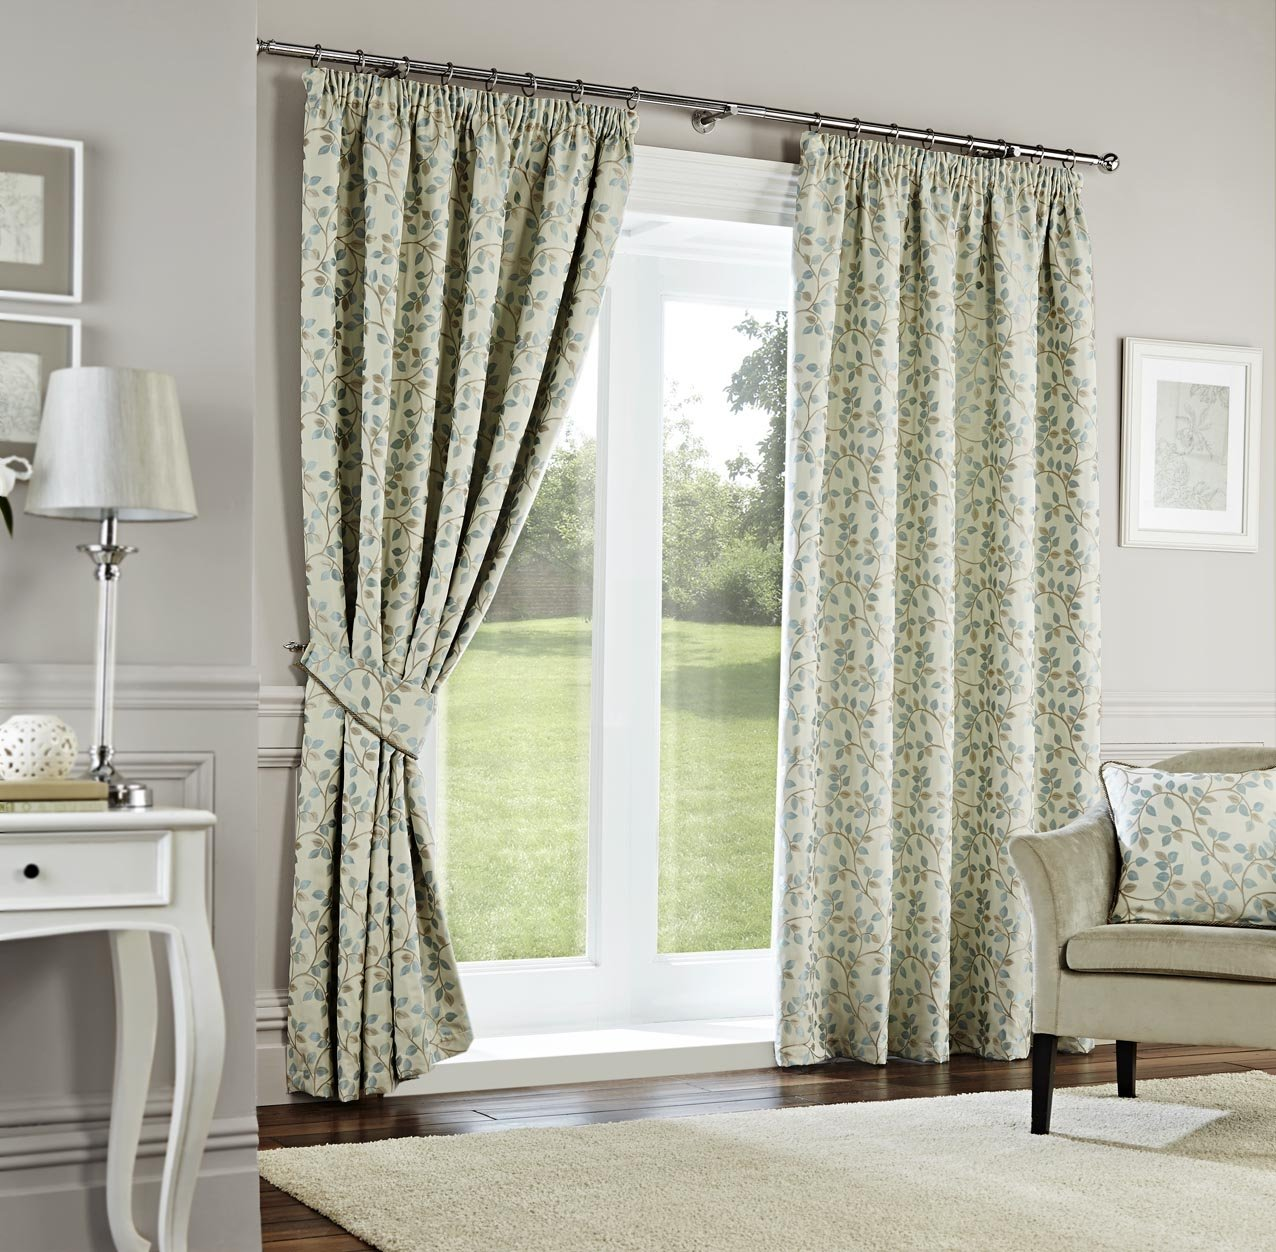 Dreams n Drapes Curtina 90 x 108 cm Oakhurst Duck Egg Lined Curtains, Turquoise       reviews